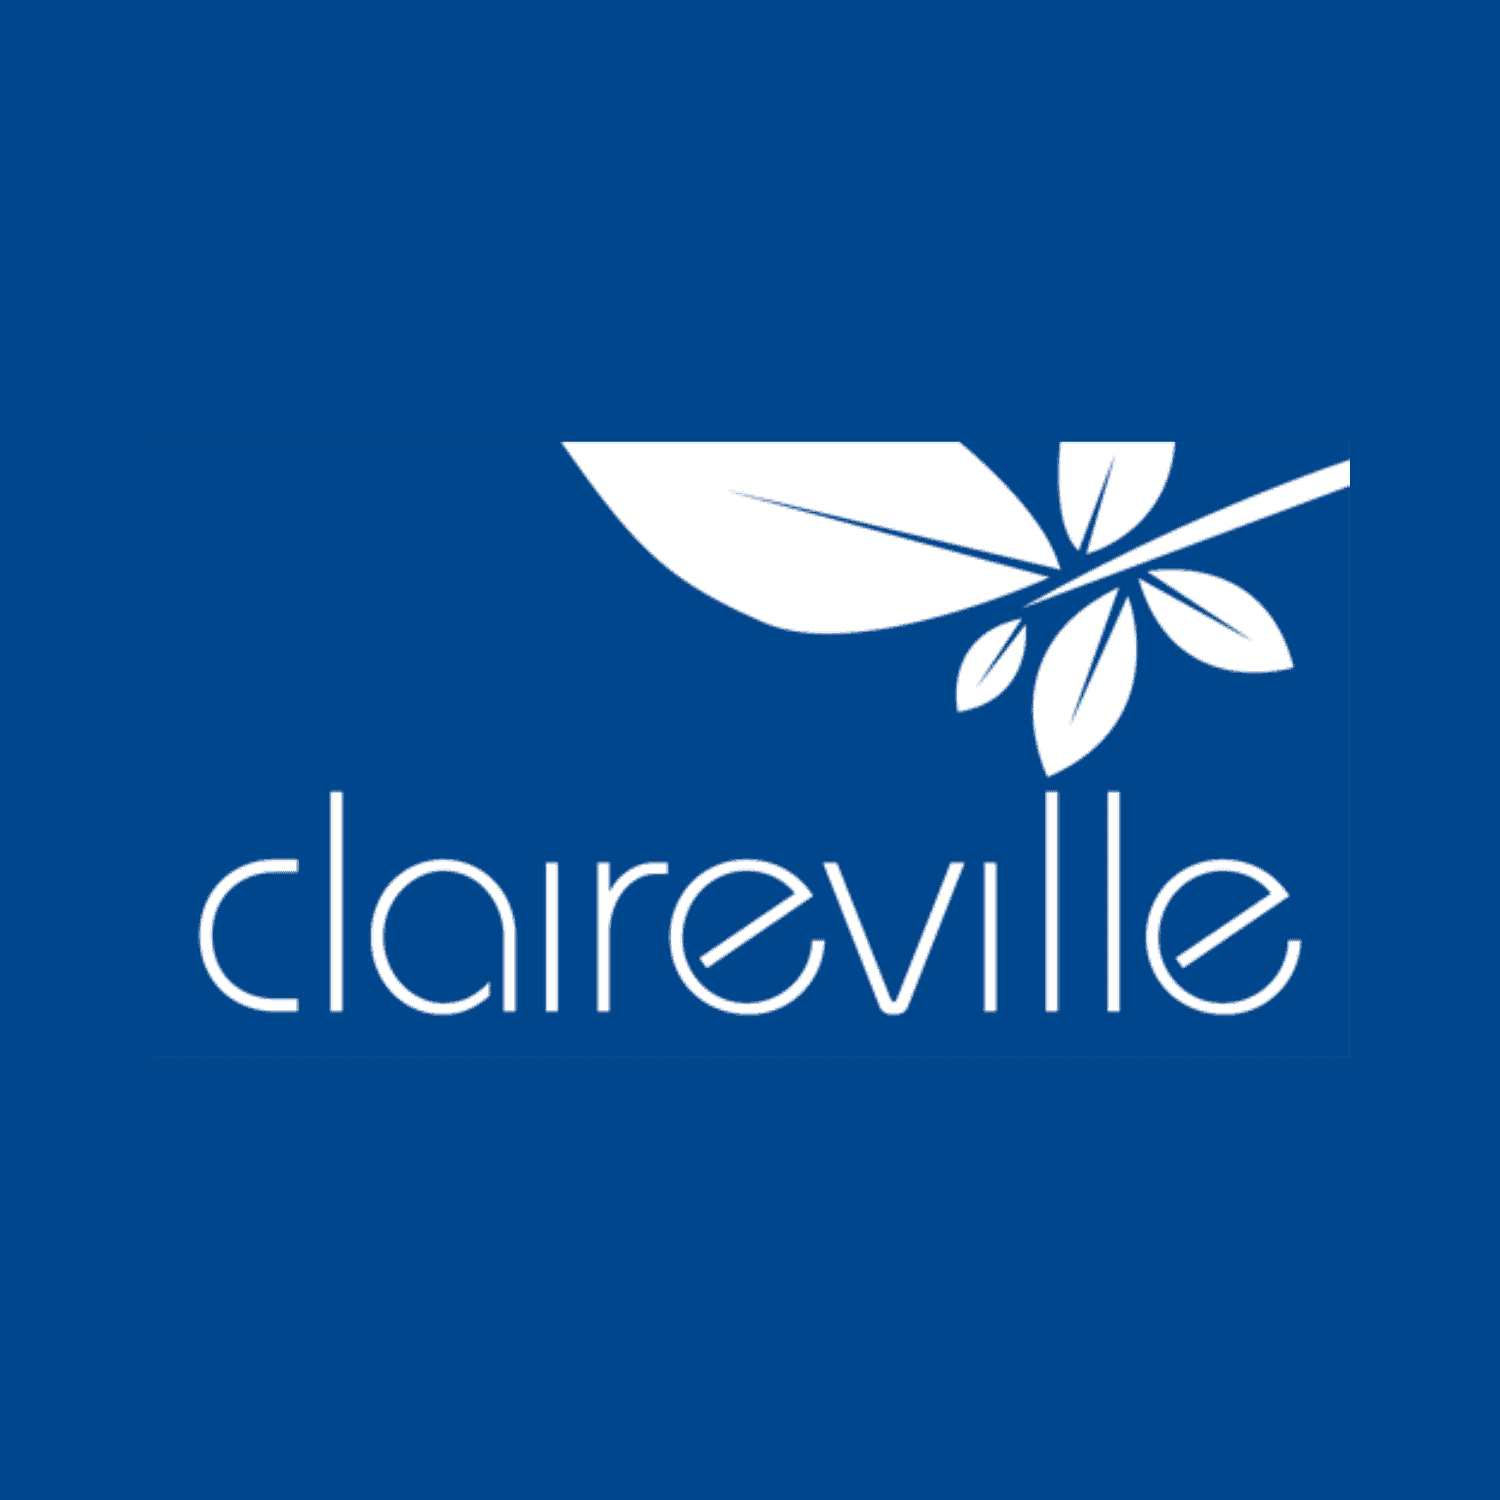 Claireville Urban Towns